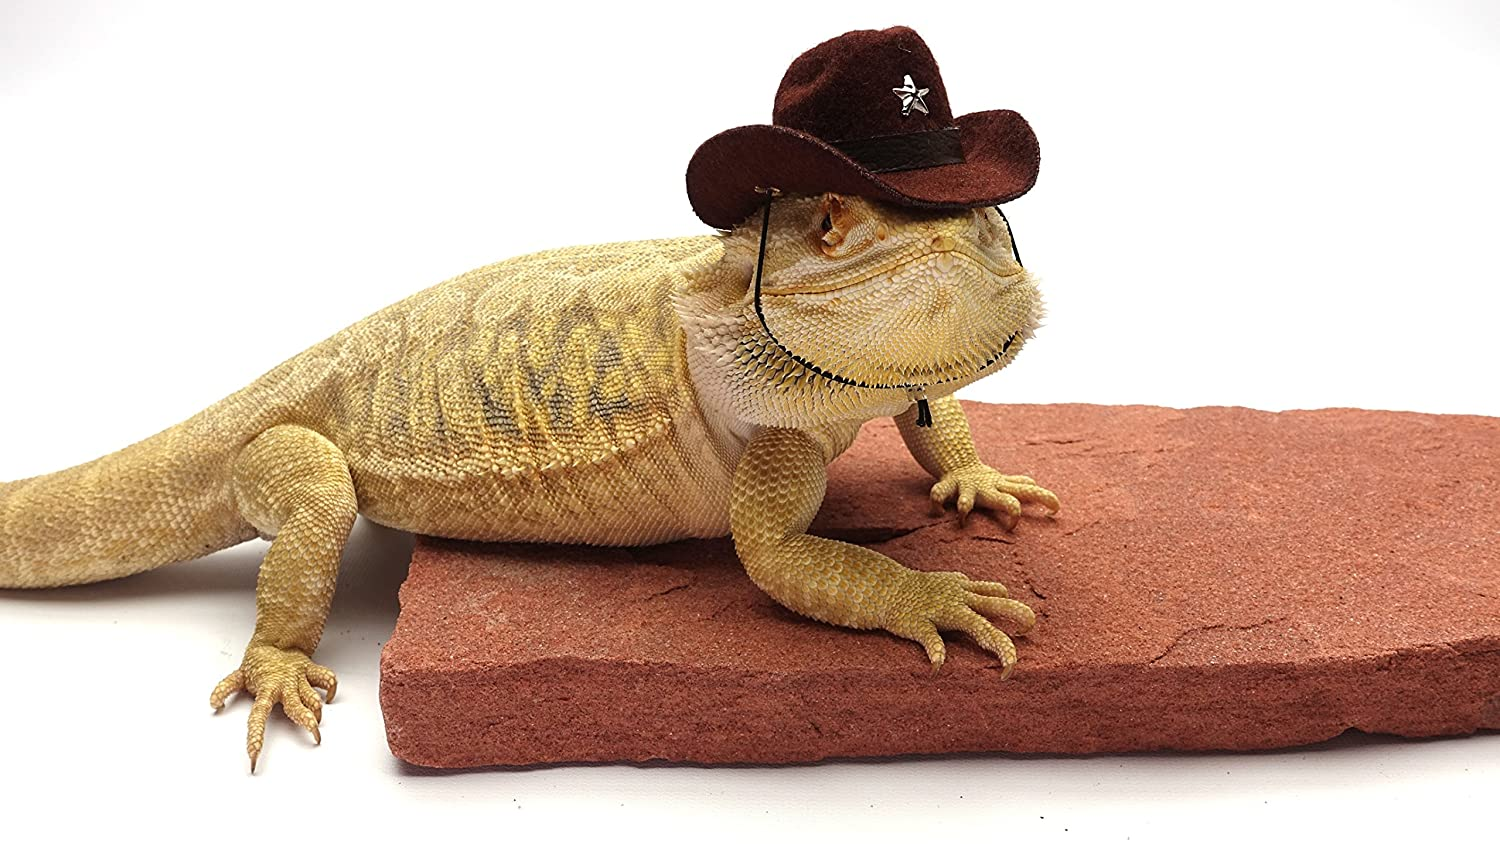 e4dfa7522db Amazon.com   Carolina Designer Dragons Bearded Dragon Cowboy Hat ...